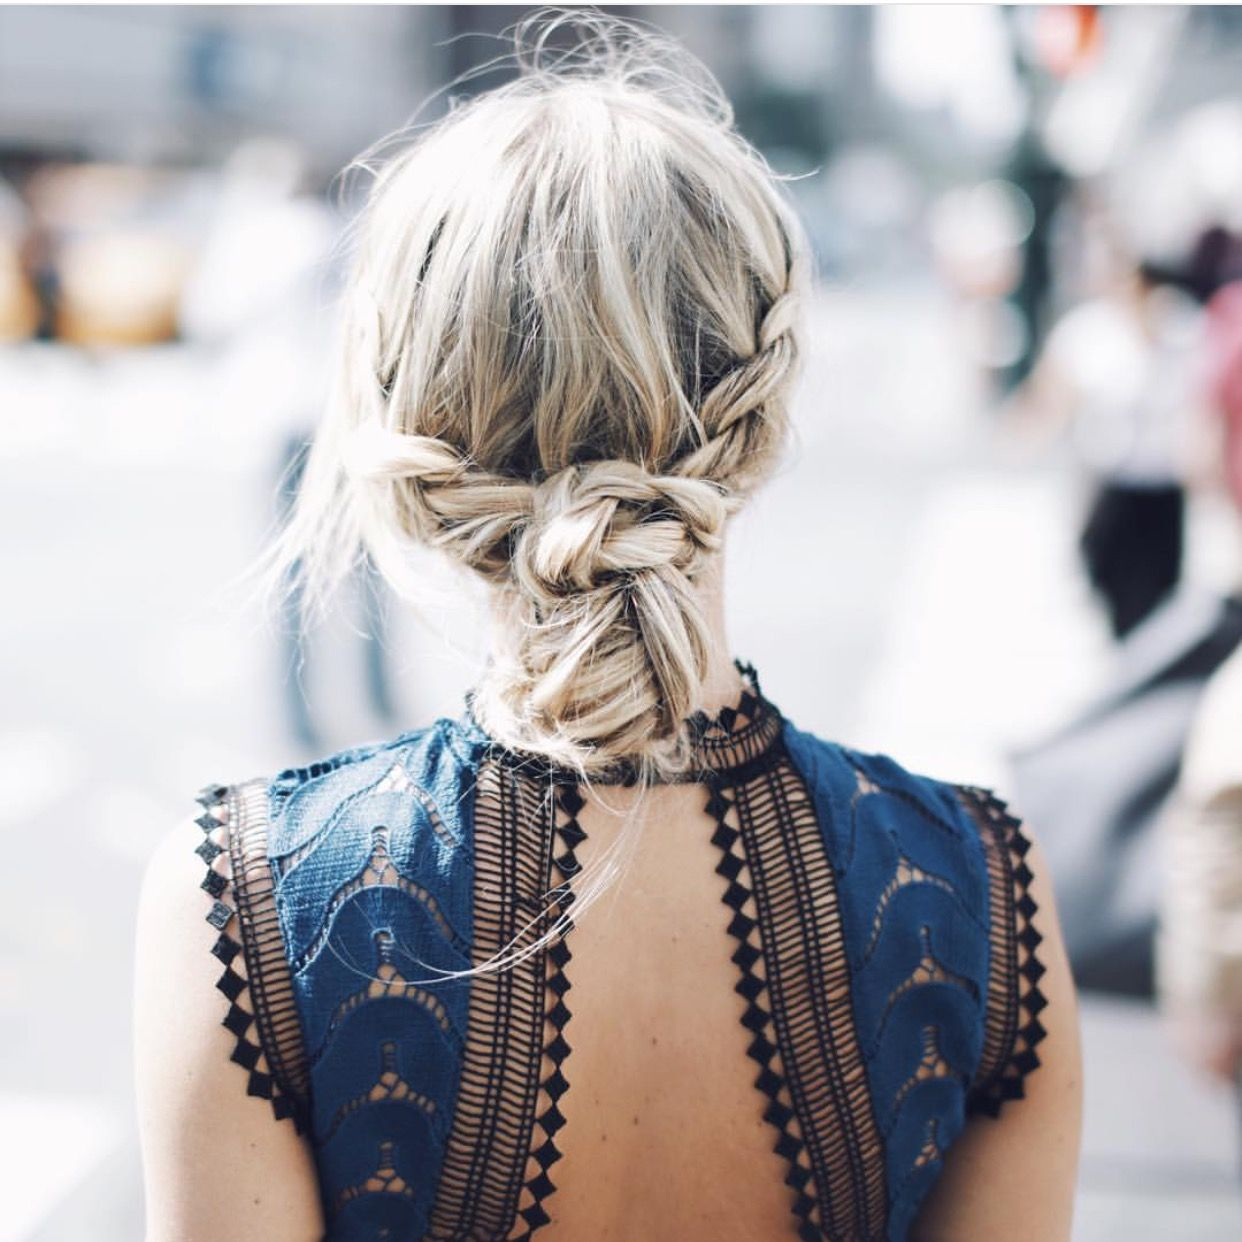 Anatomy of a cute hairstyle simple bloggerapproved looks to try